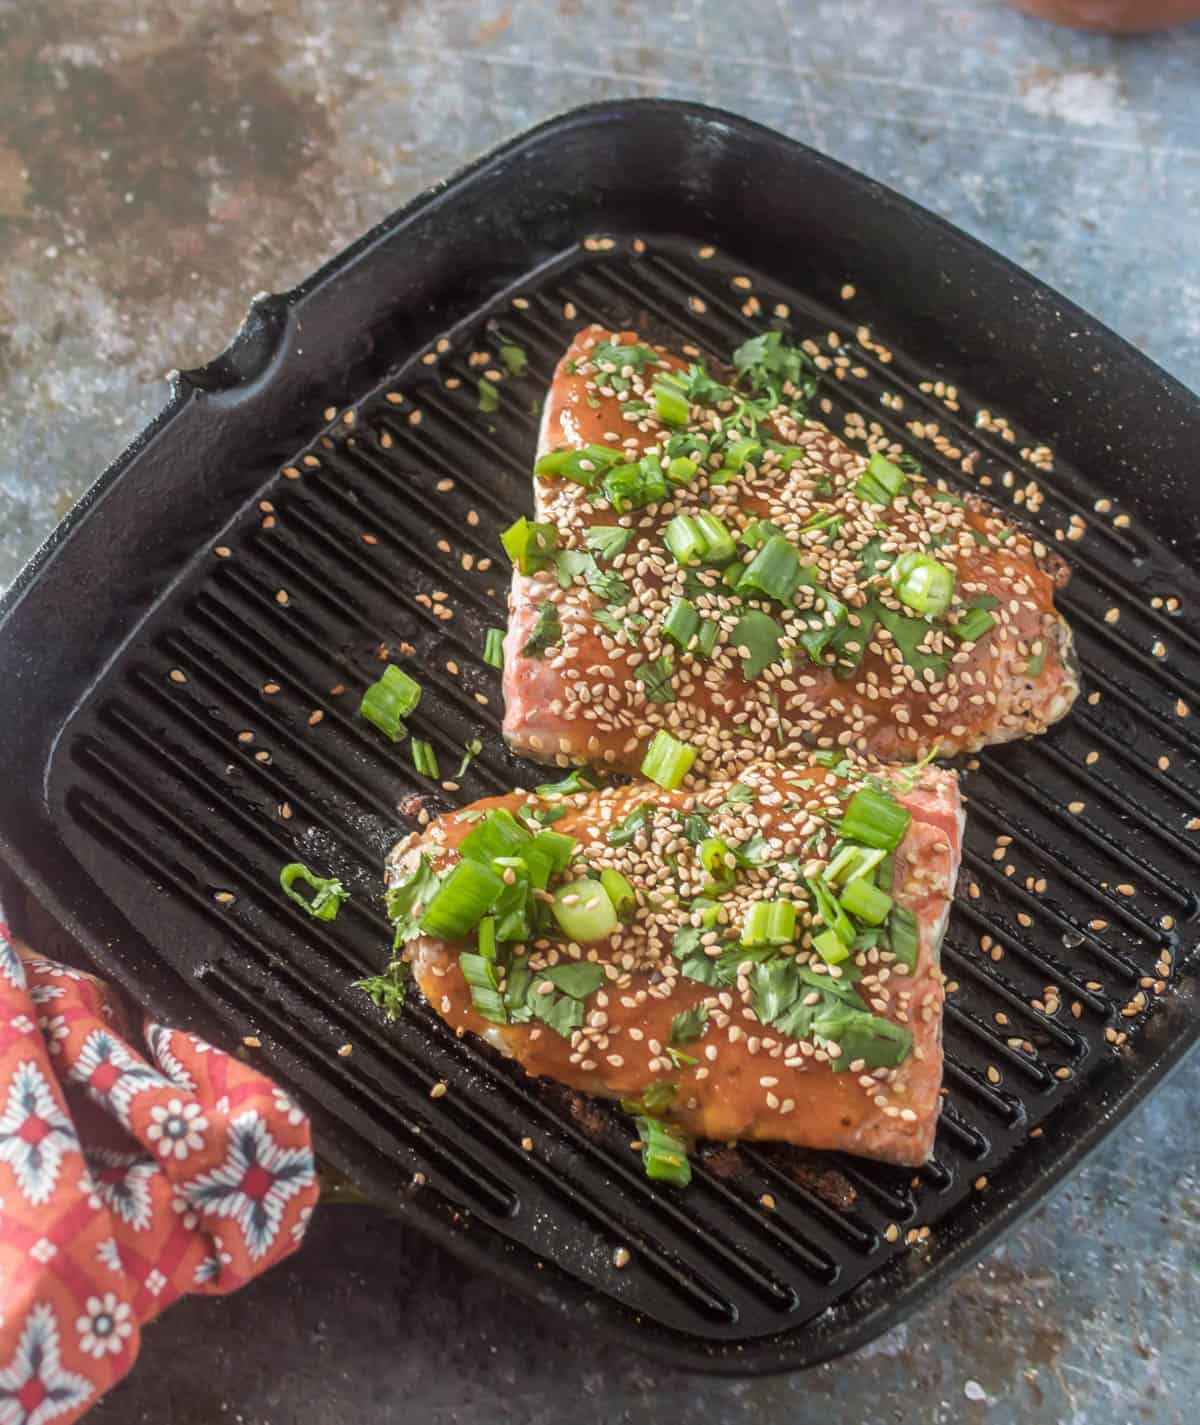 A griddle pan with 2 salmon portions glazed with homemade chamoy and sprinkled with sesame seeds, cilantro, and scallions.